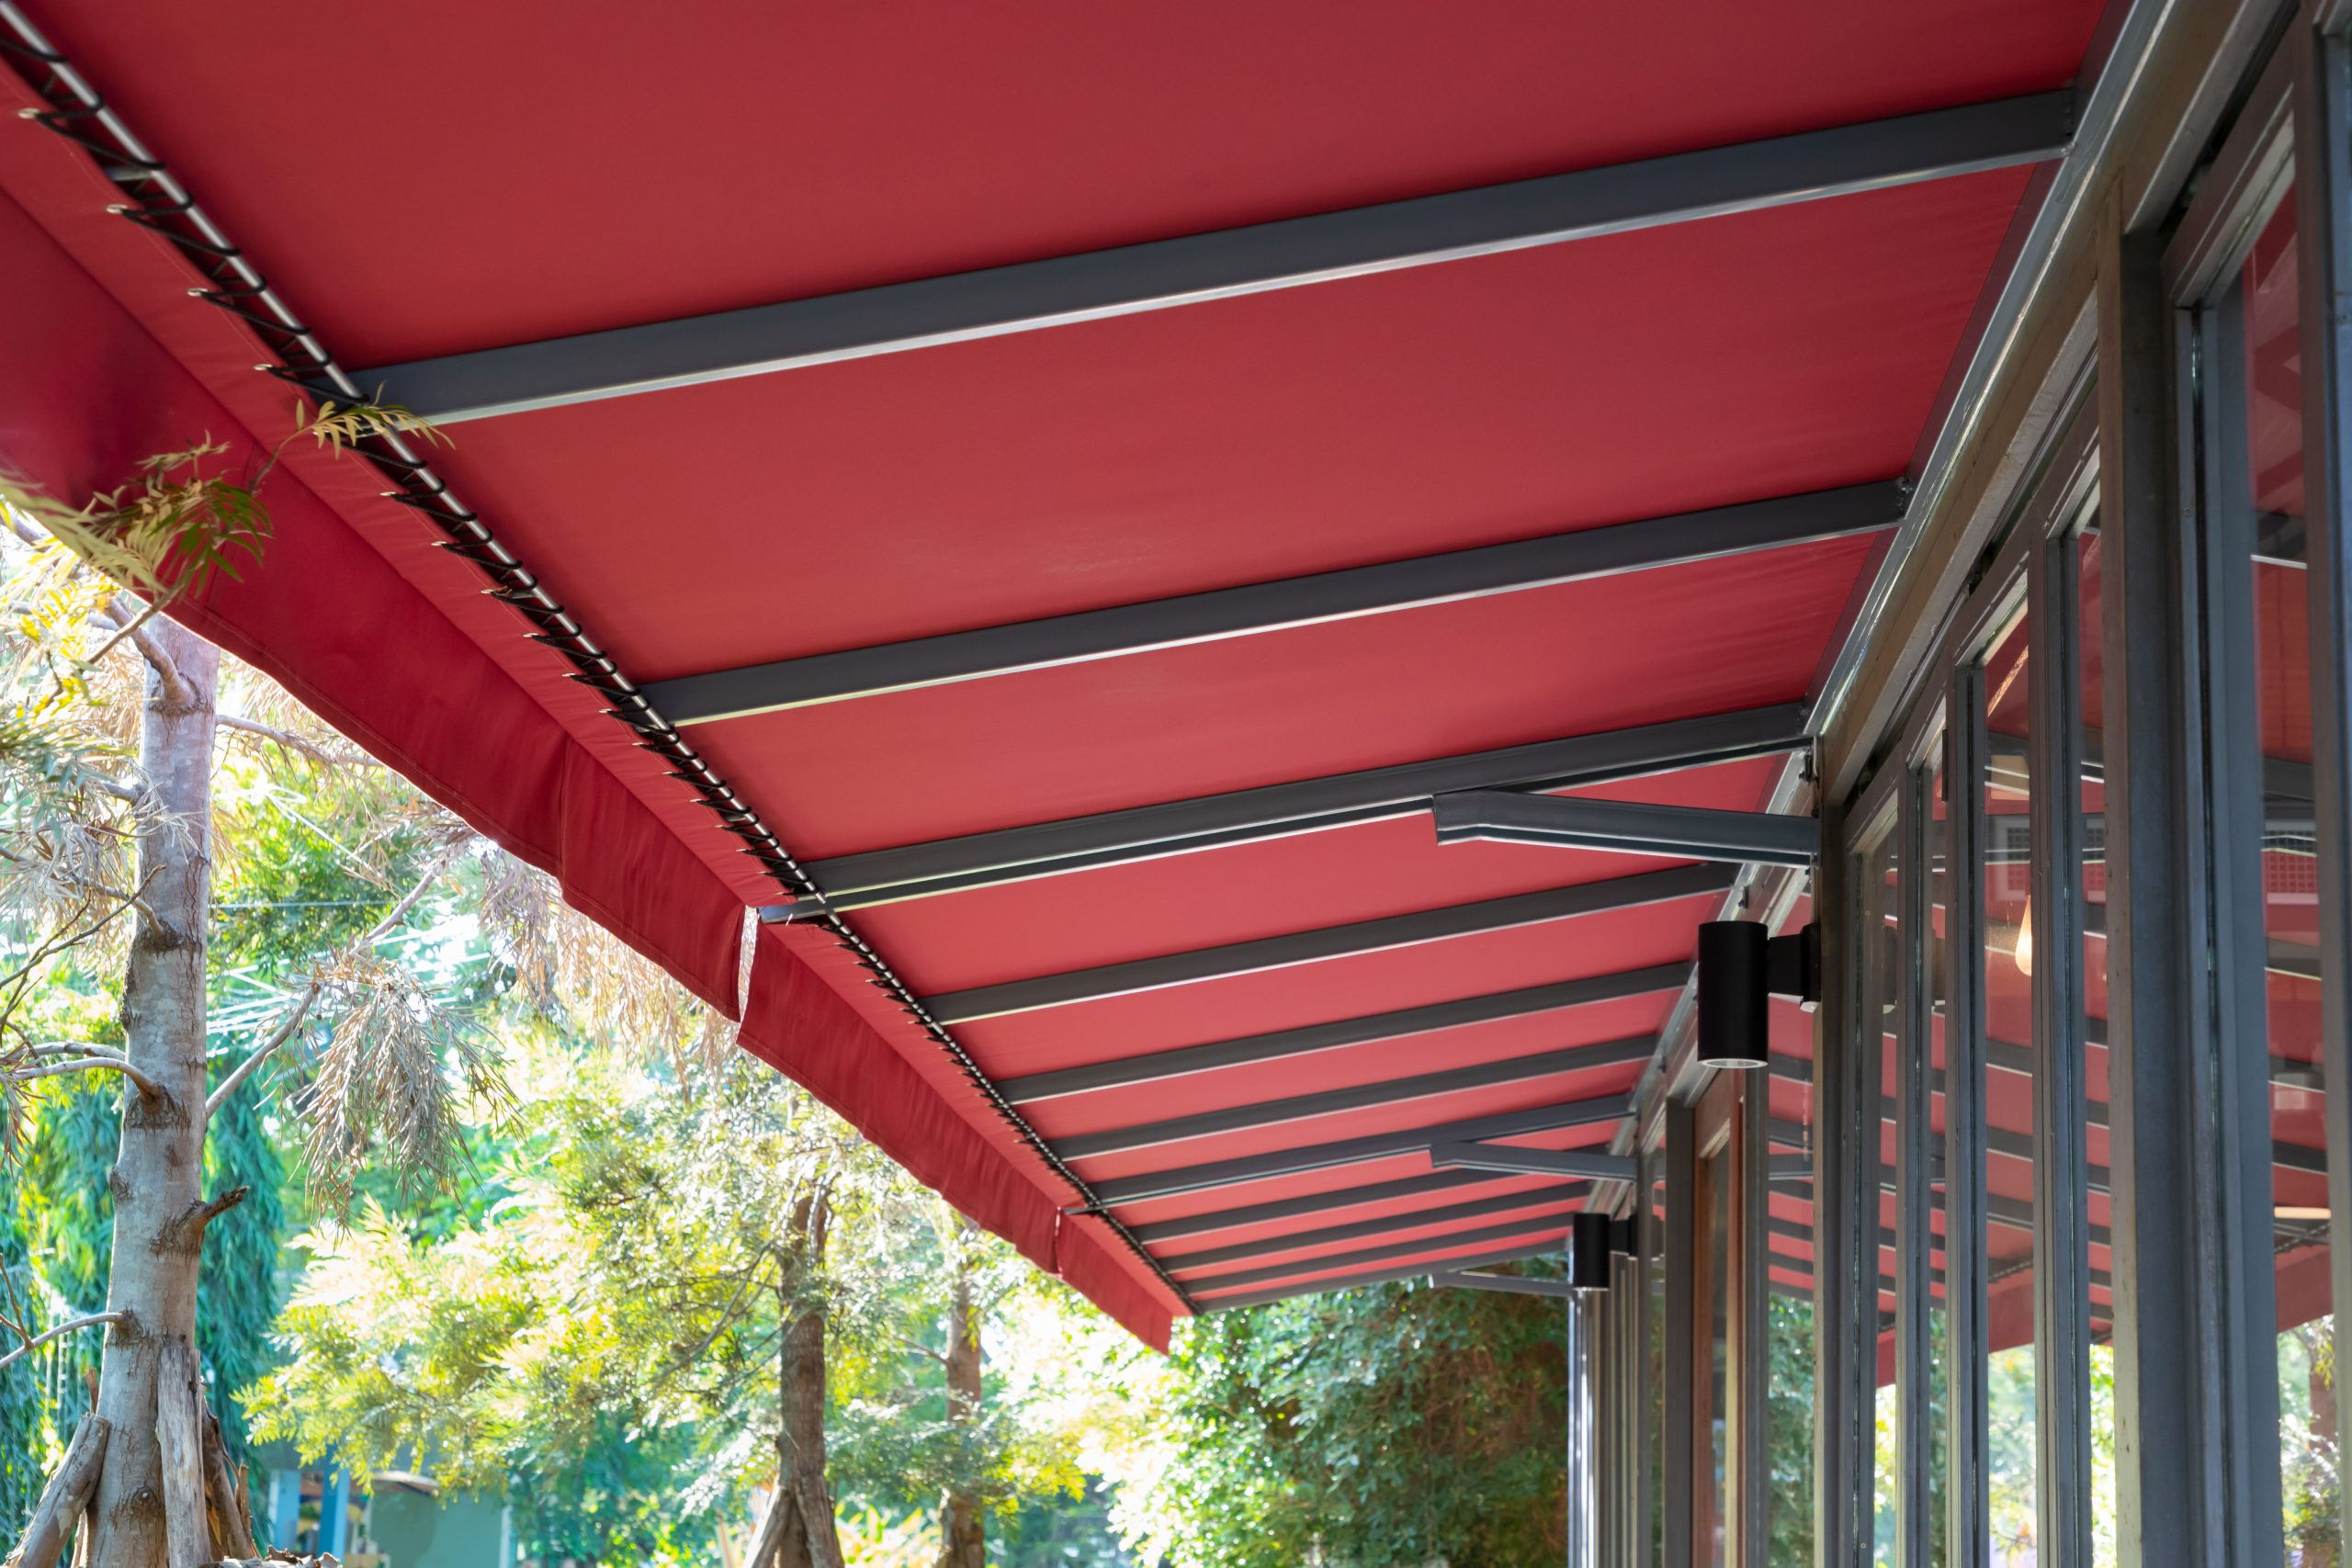 red fabric awning with steel structure roof